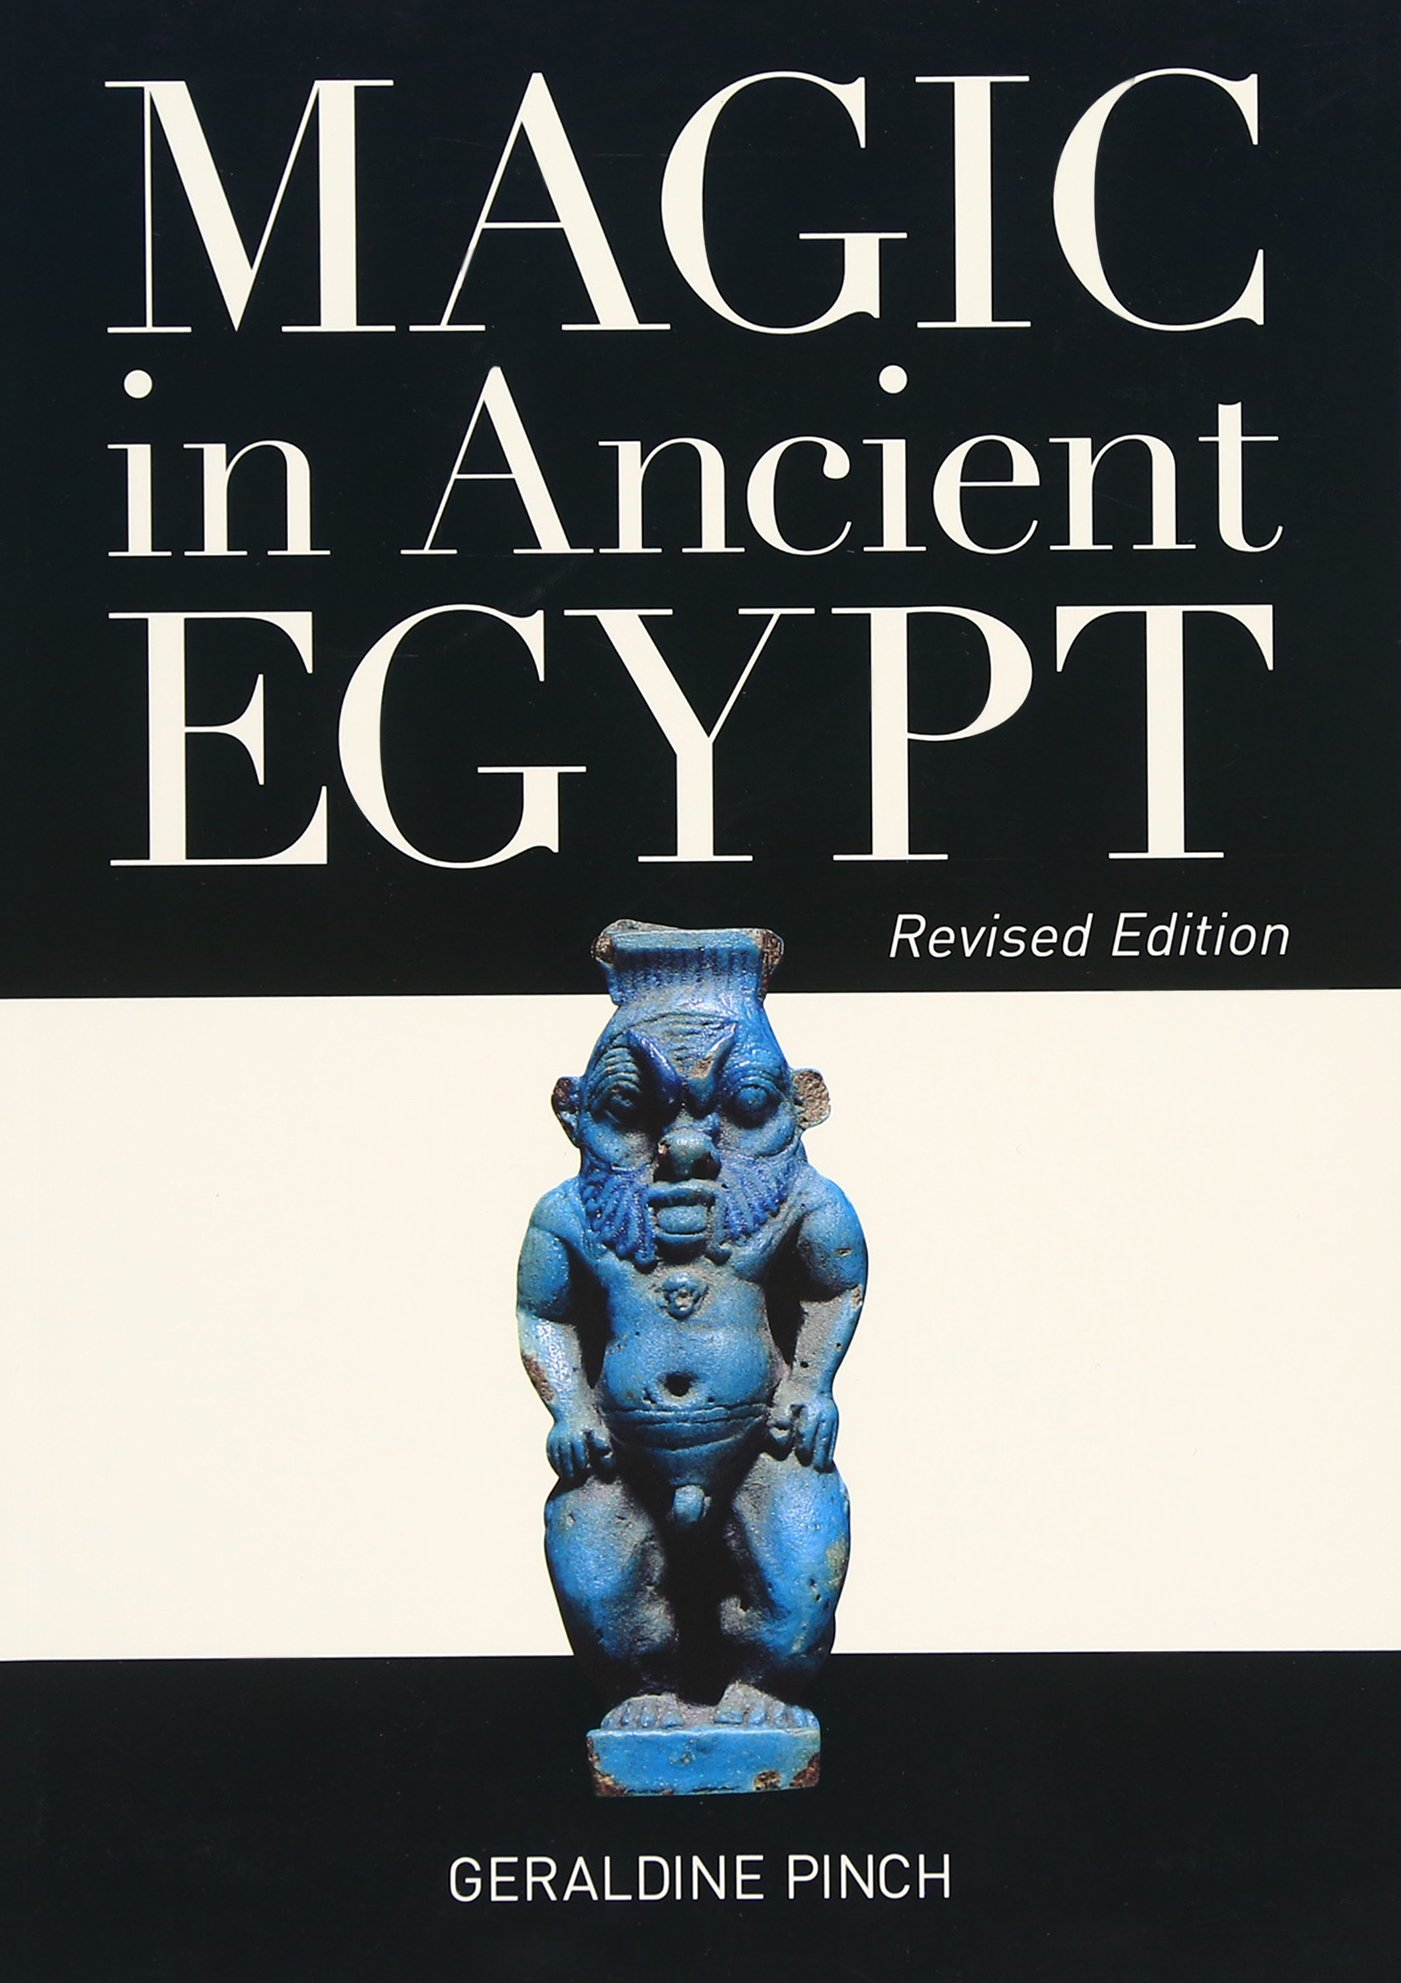 Magic in ancient egypt revised edition geraldine pinch magic in ancient egypt revised edition geraldine pinch 9780292722620 amazon books fandeluxe Gallery